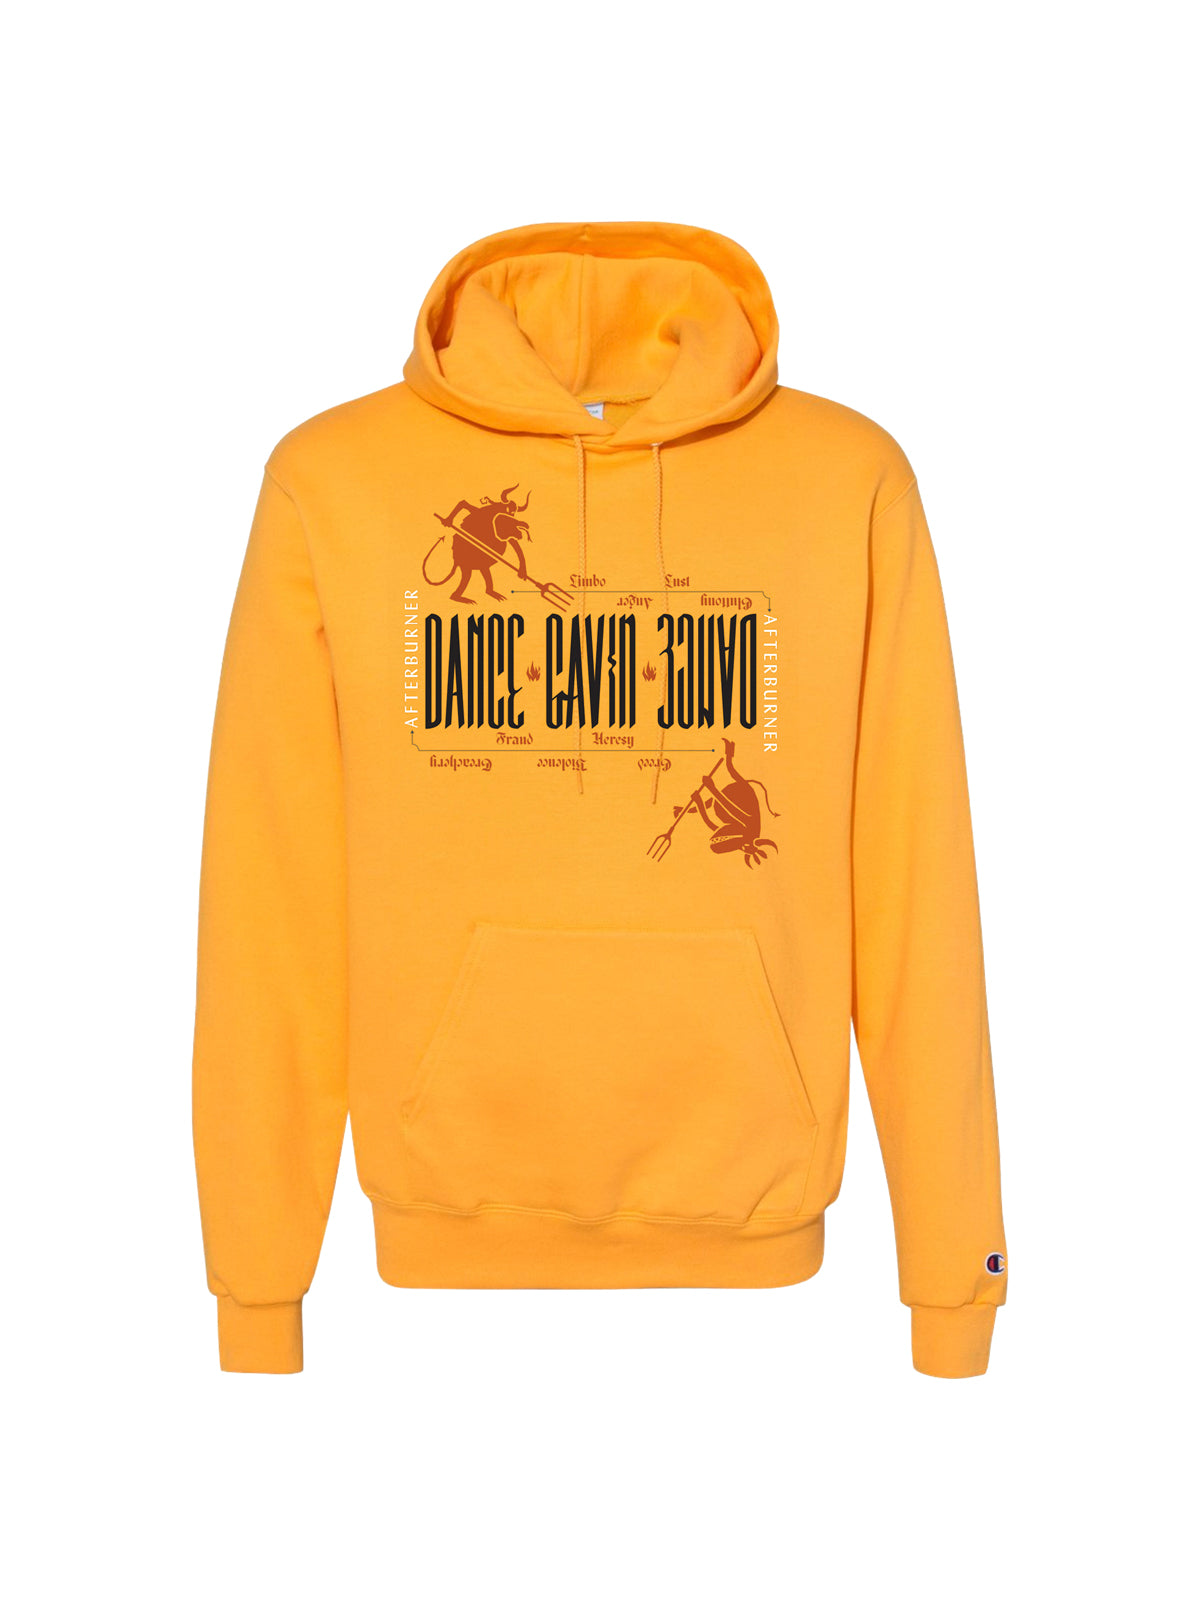 Dance Gavin Dance - Bull Minions Hoodie - SHIPS MAY 18 - Merch Limited